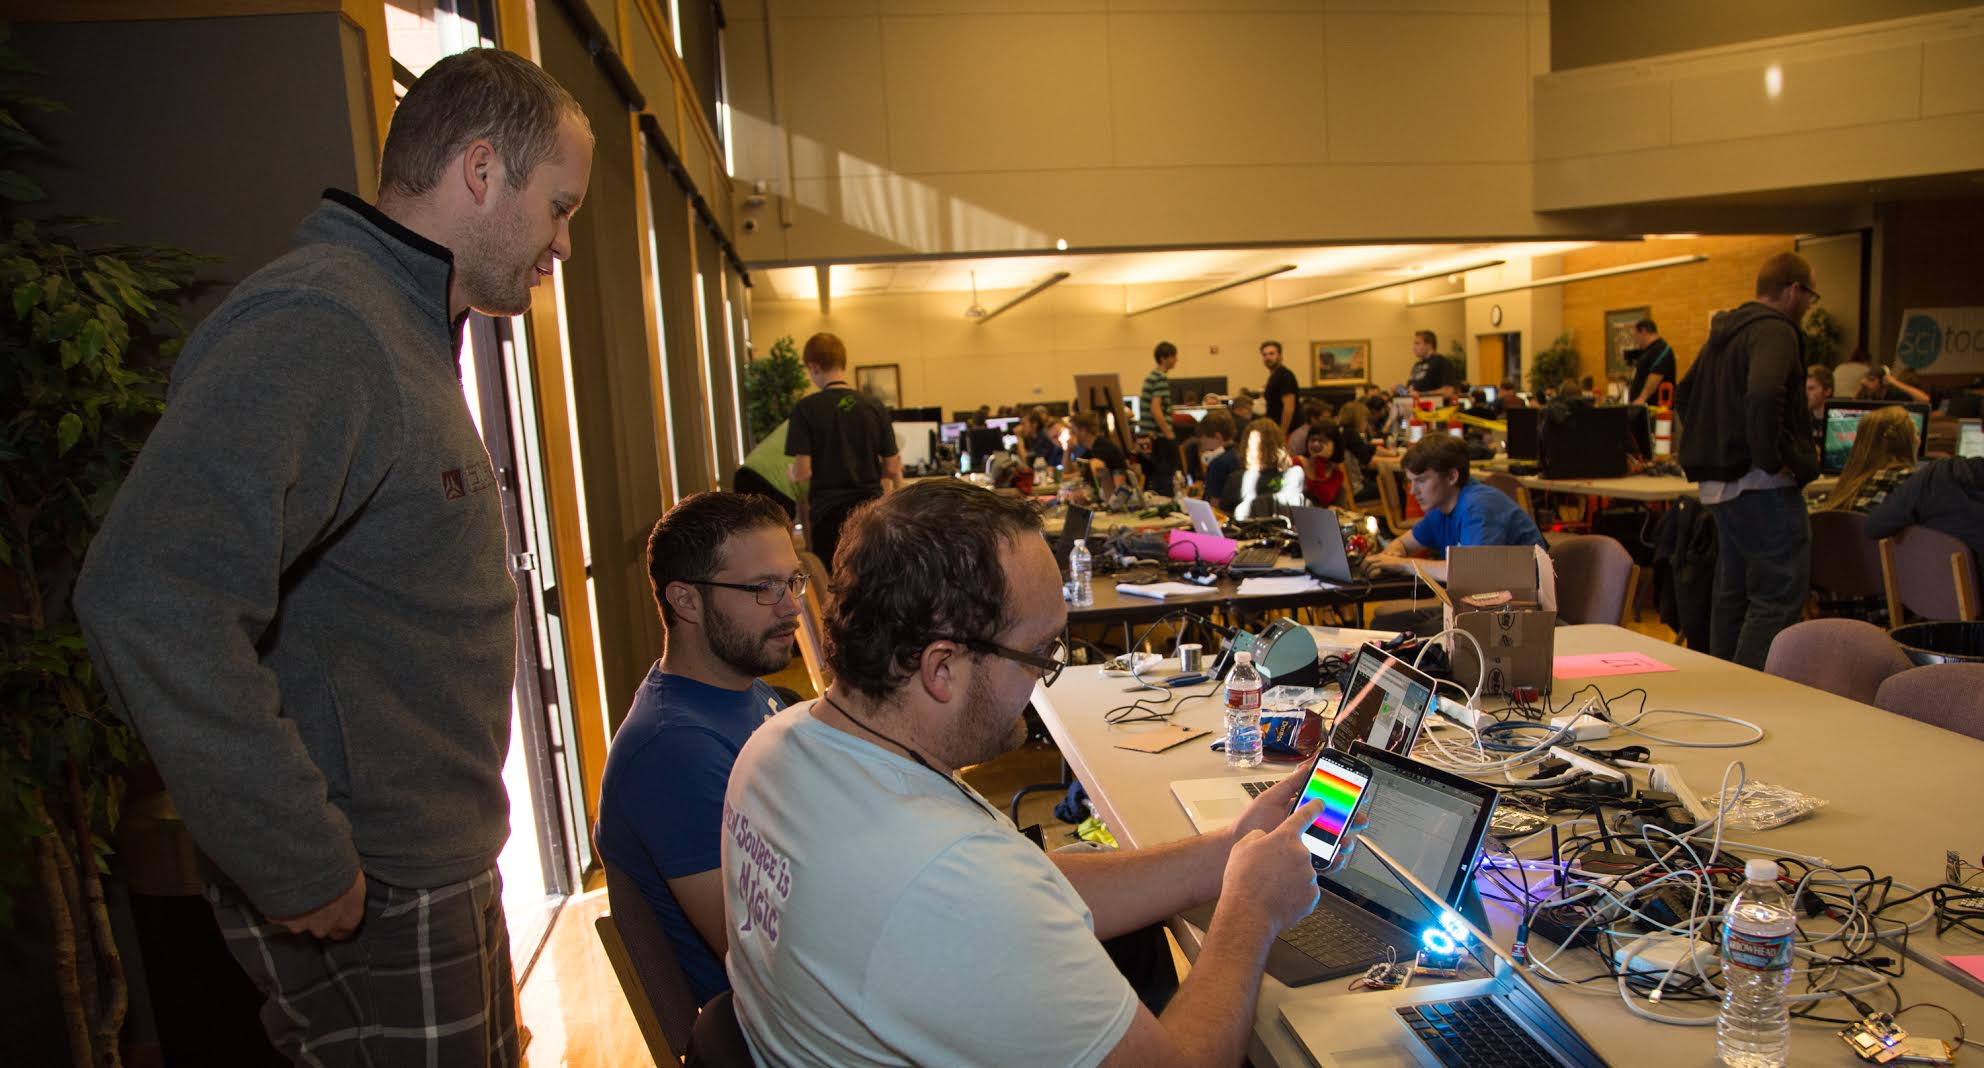 Novice, collegiate and professional programmers and designers participate in the 2015 Code Camp at Dixie State University's Gardner Student Center. St. George, Utah, Nov. 13, 2015 | Photo courtesy of Dixie State University, St. George News